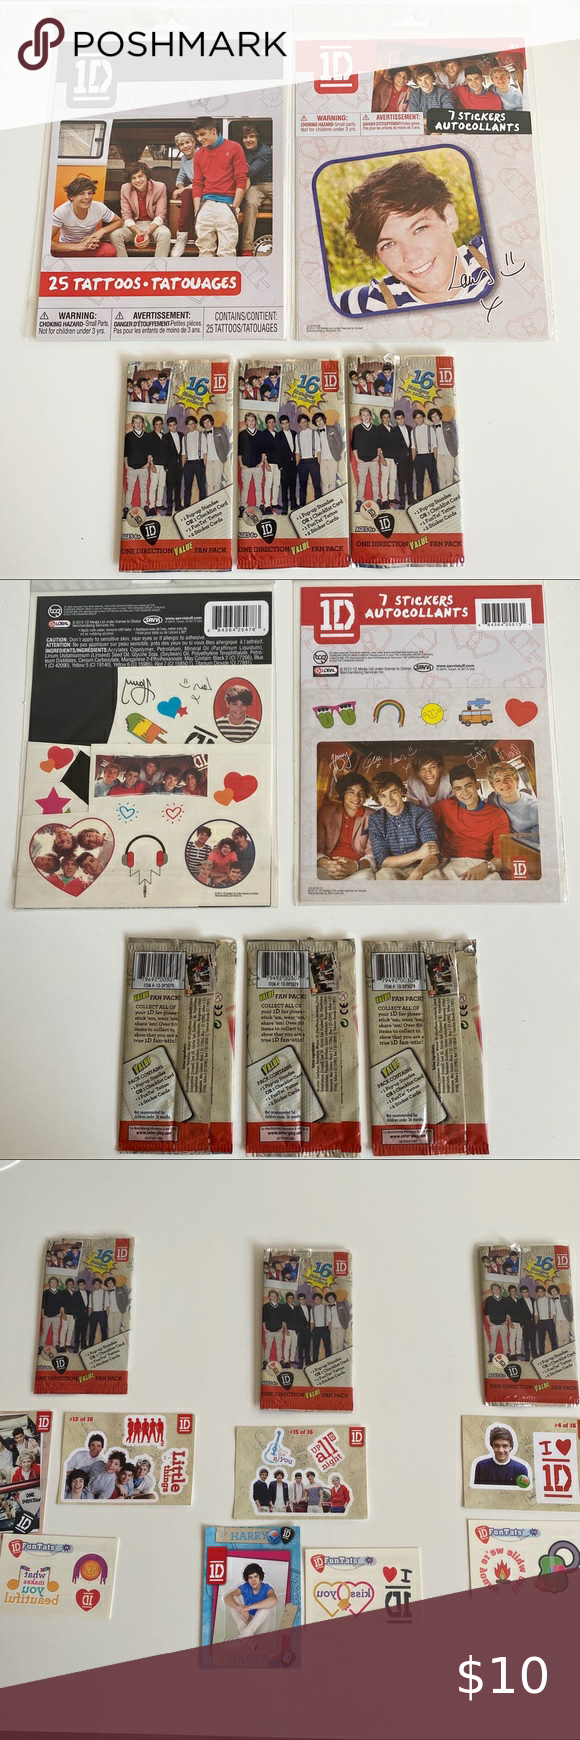 One Direction Tattoos And Stickers In 2020 One Direction Tattoos Collectible Cards Stickers